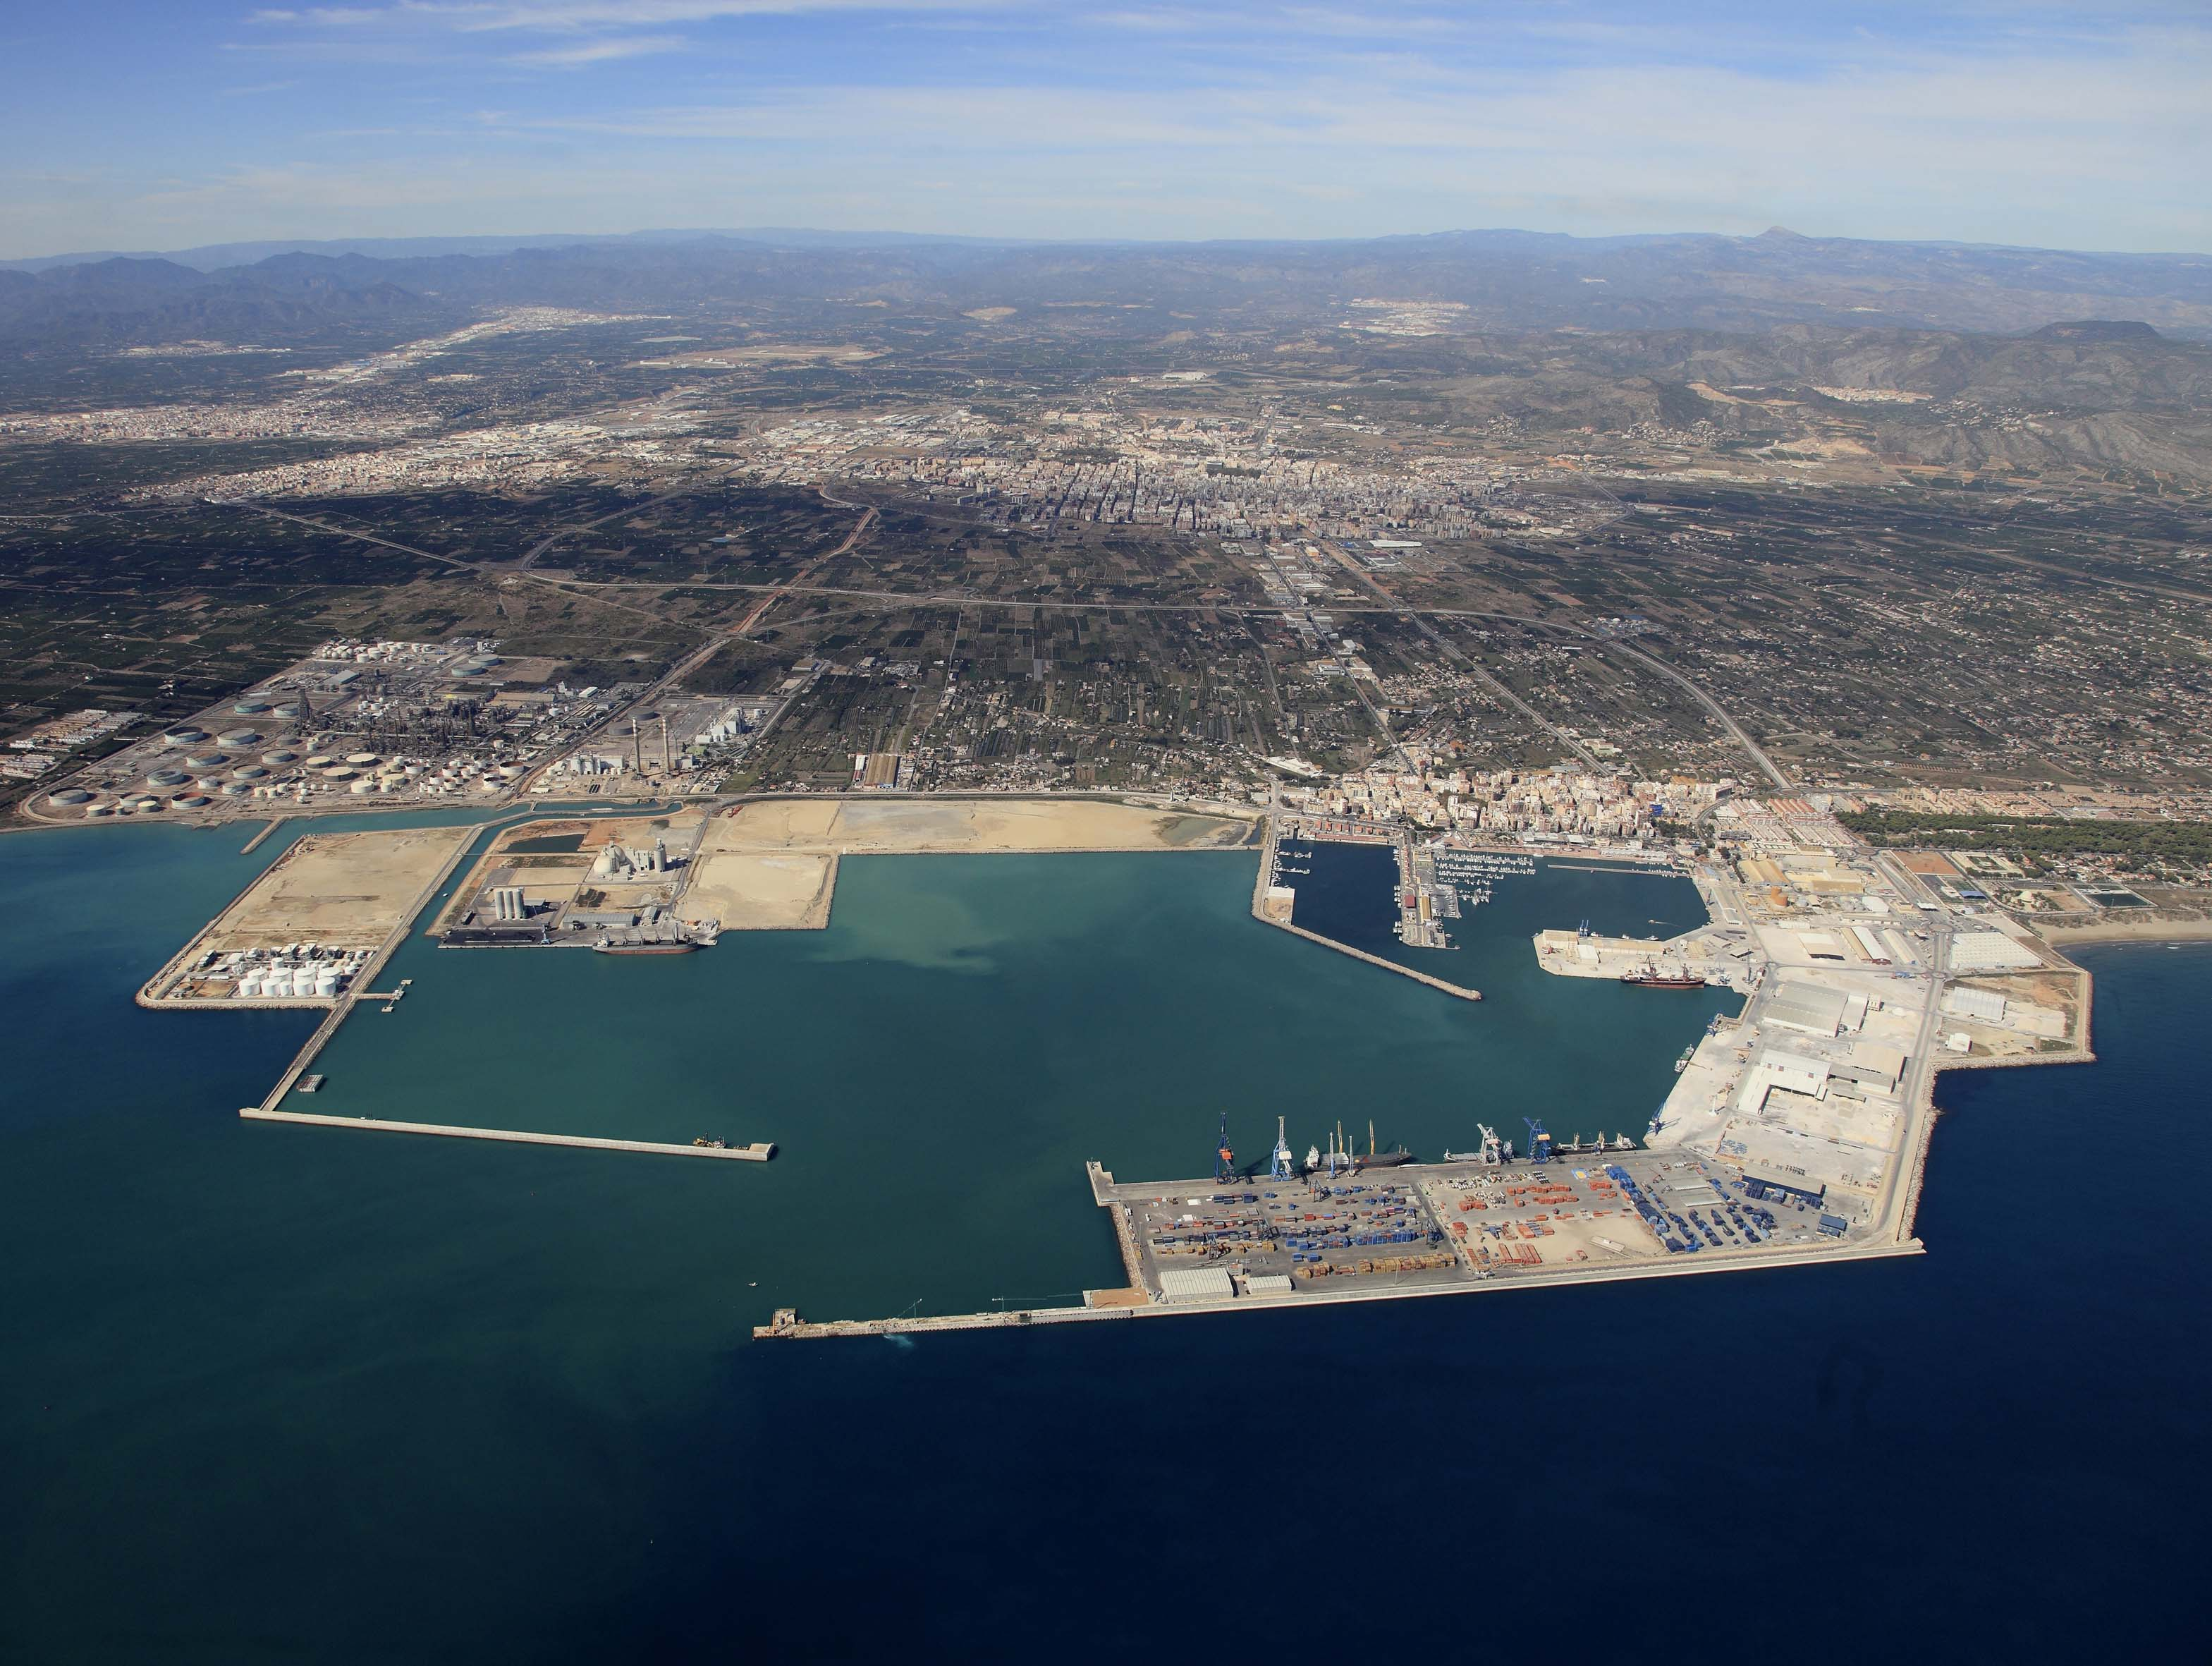 Port of Castellon